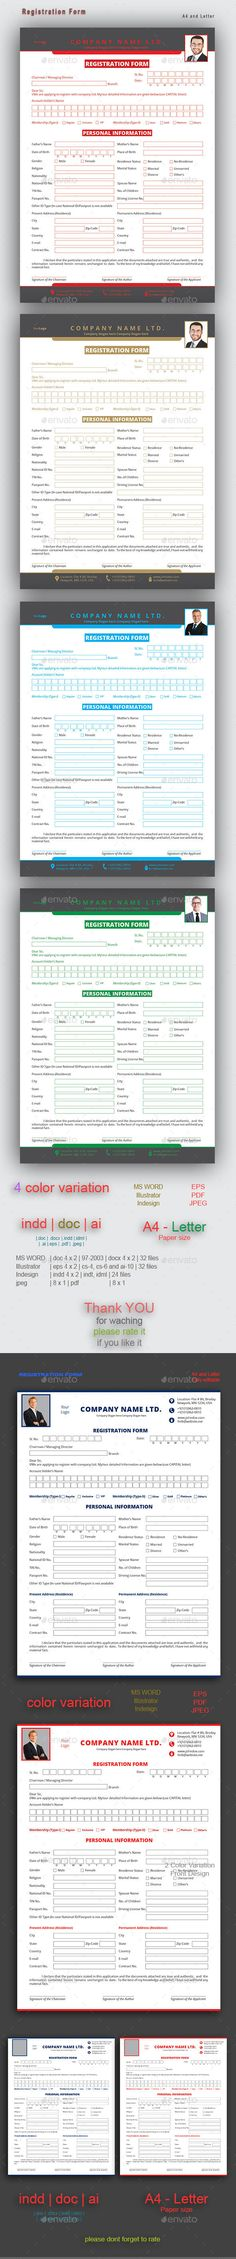 Retro vintage typography poster VOL1 Vintage typography - requisition form in pdf